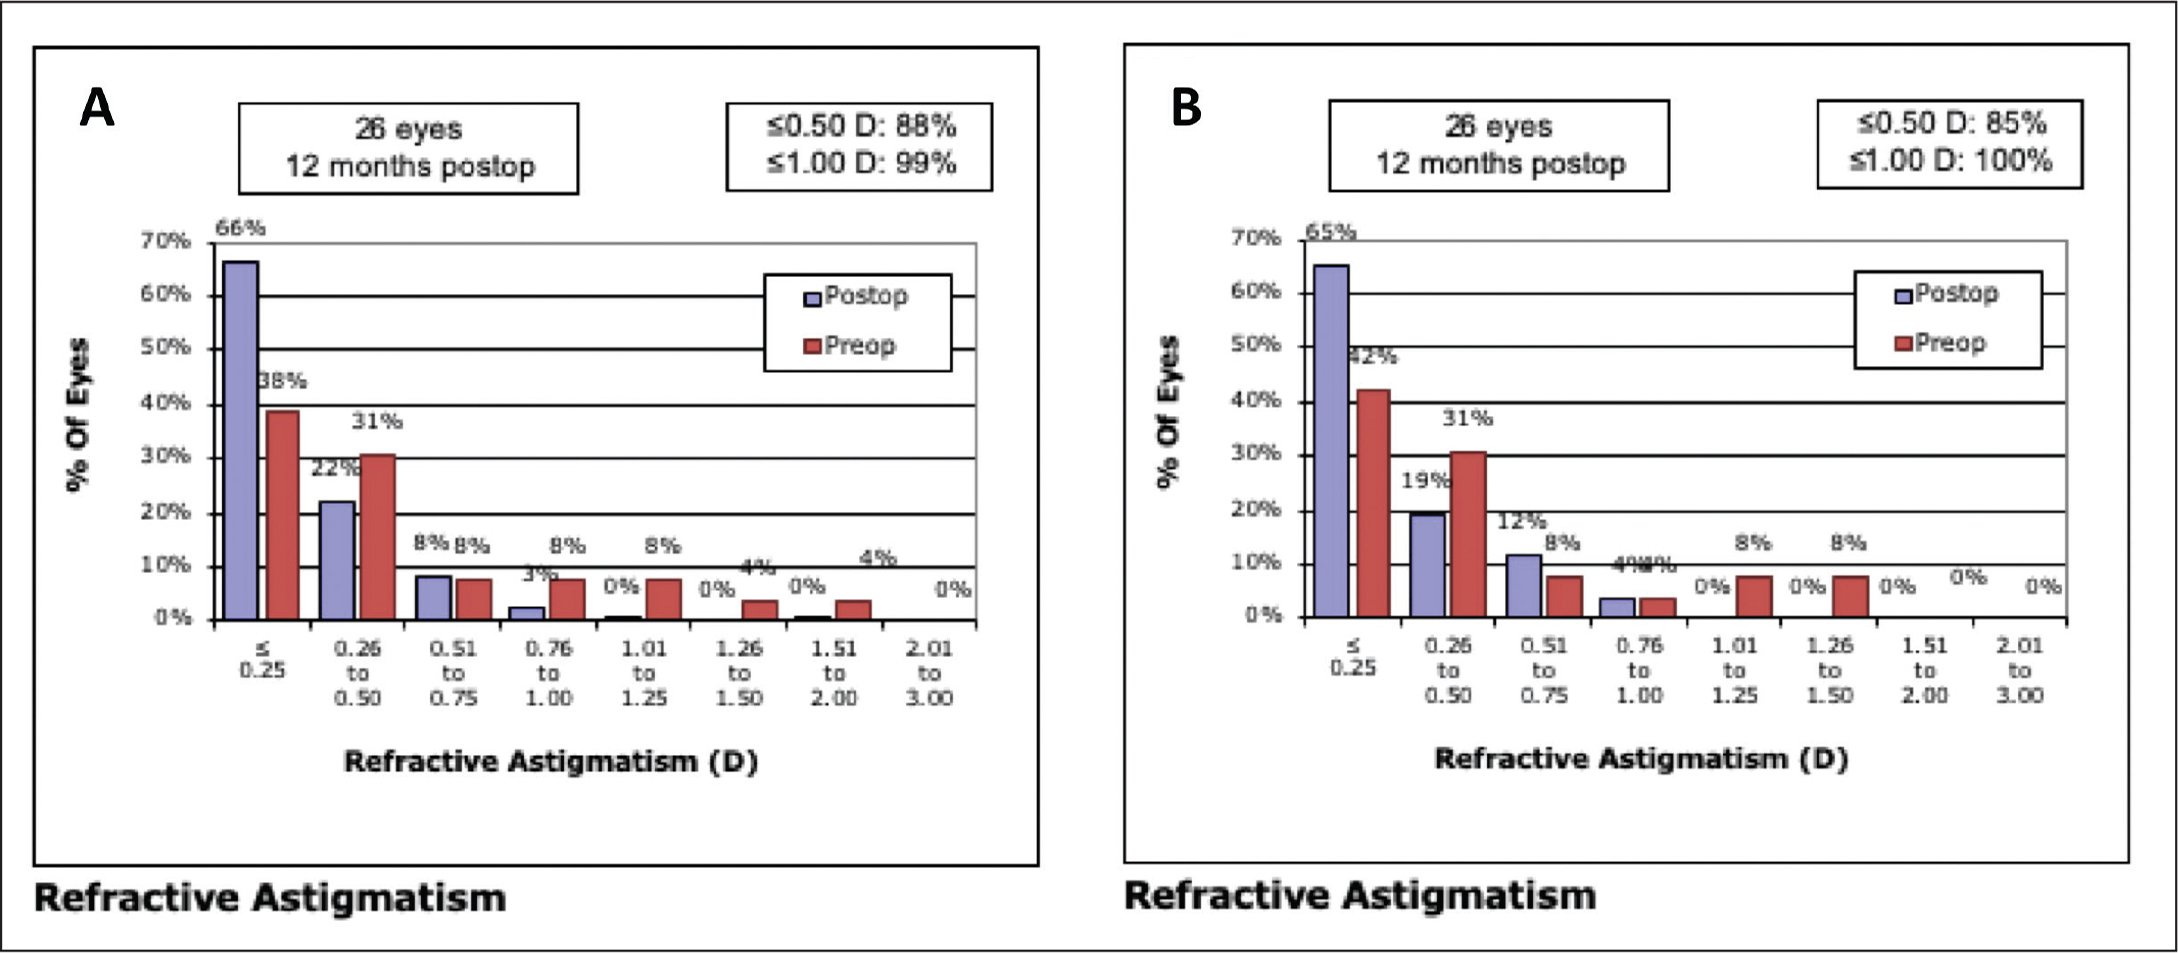 Accuracy of refractive astigmatism correction at 12 months in the (A) topography-guided customized ablation treatment (TCAT) and (B) wavefront-optimized (WFO) groups. D = diopters